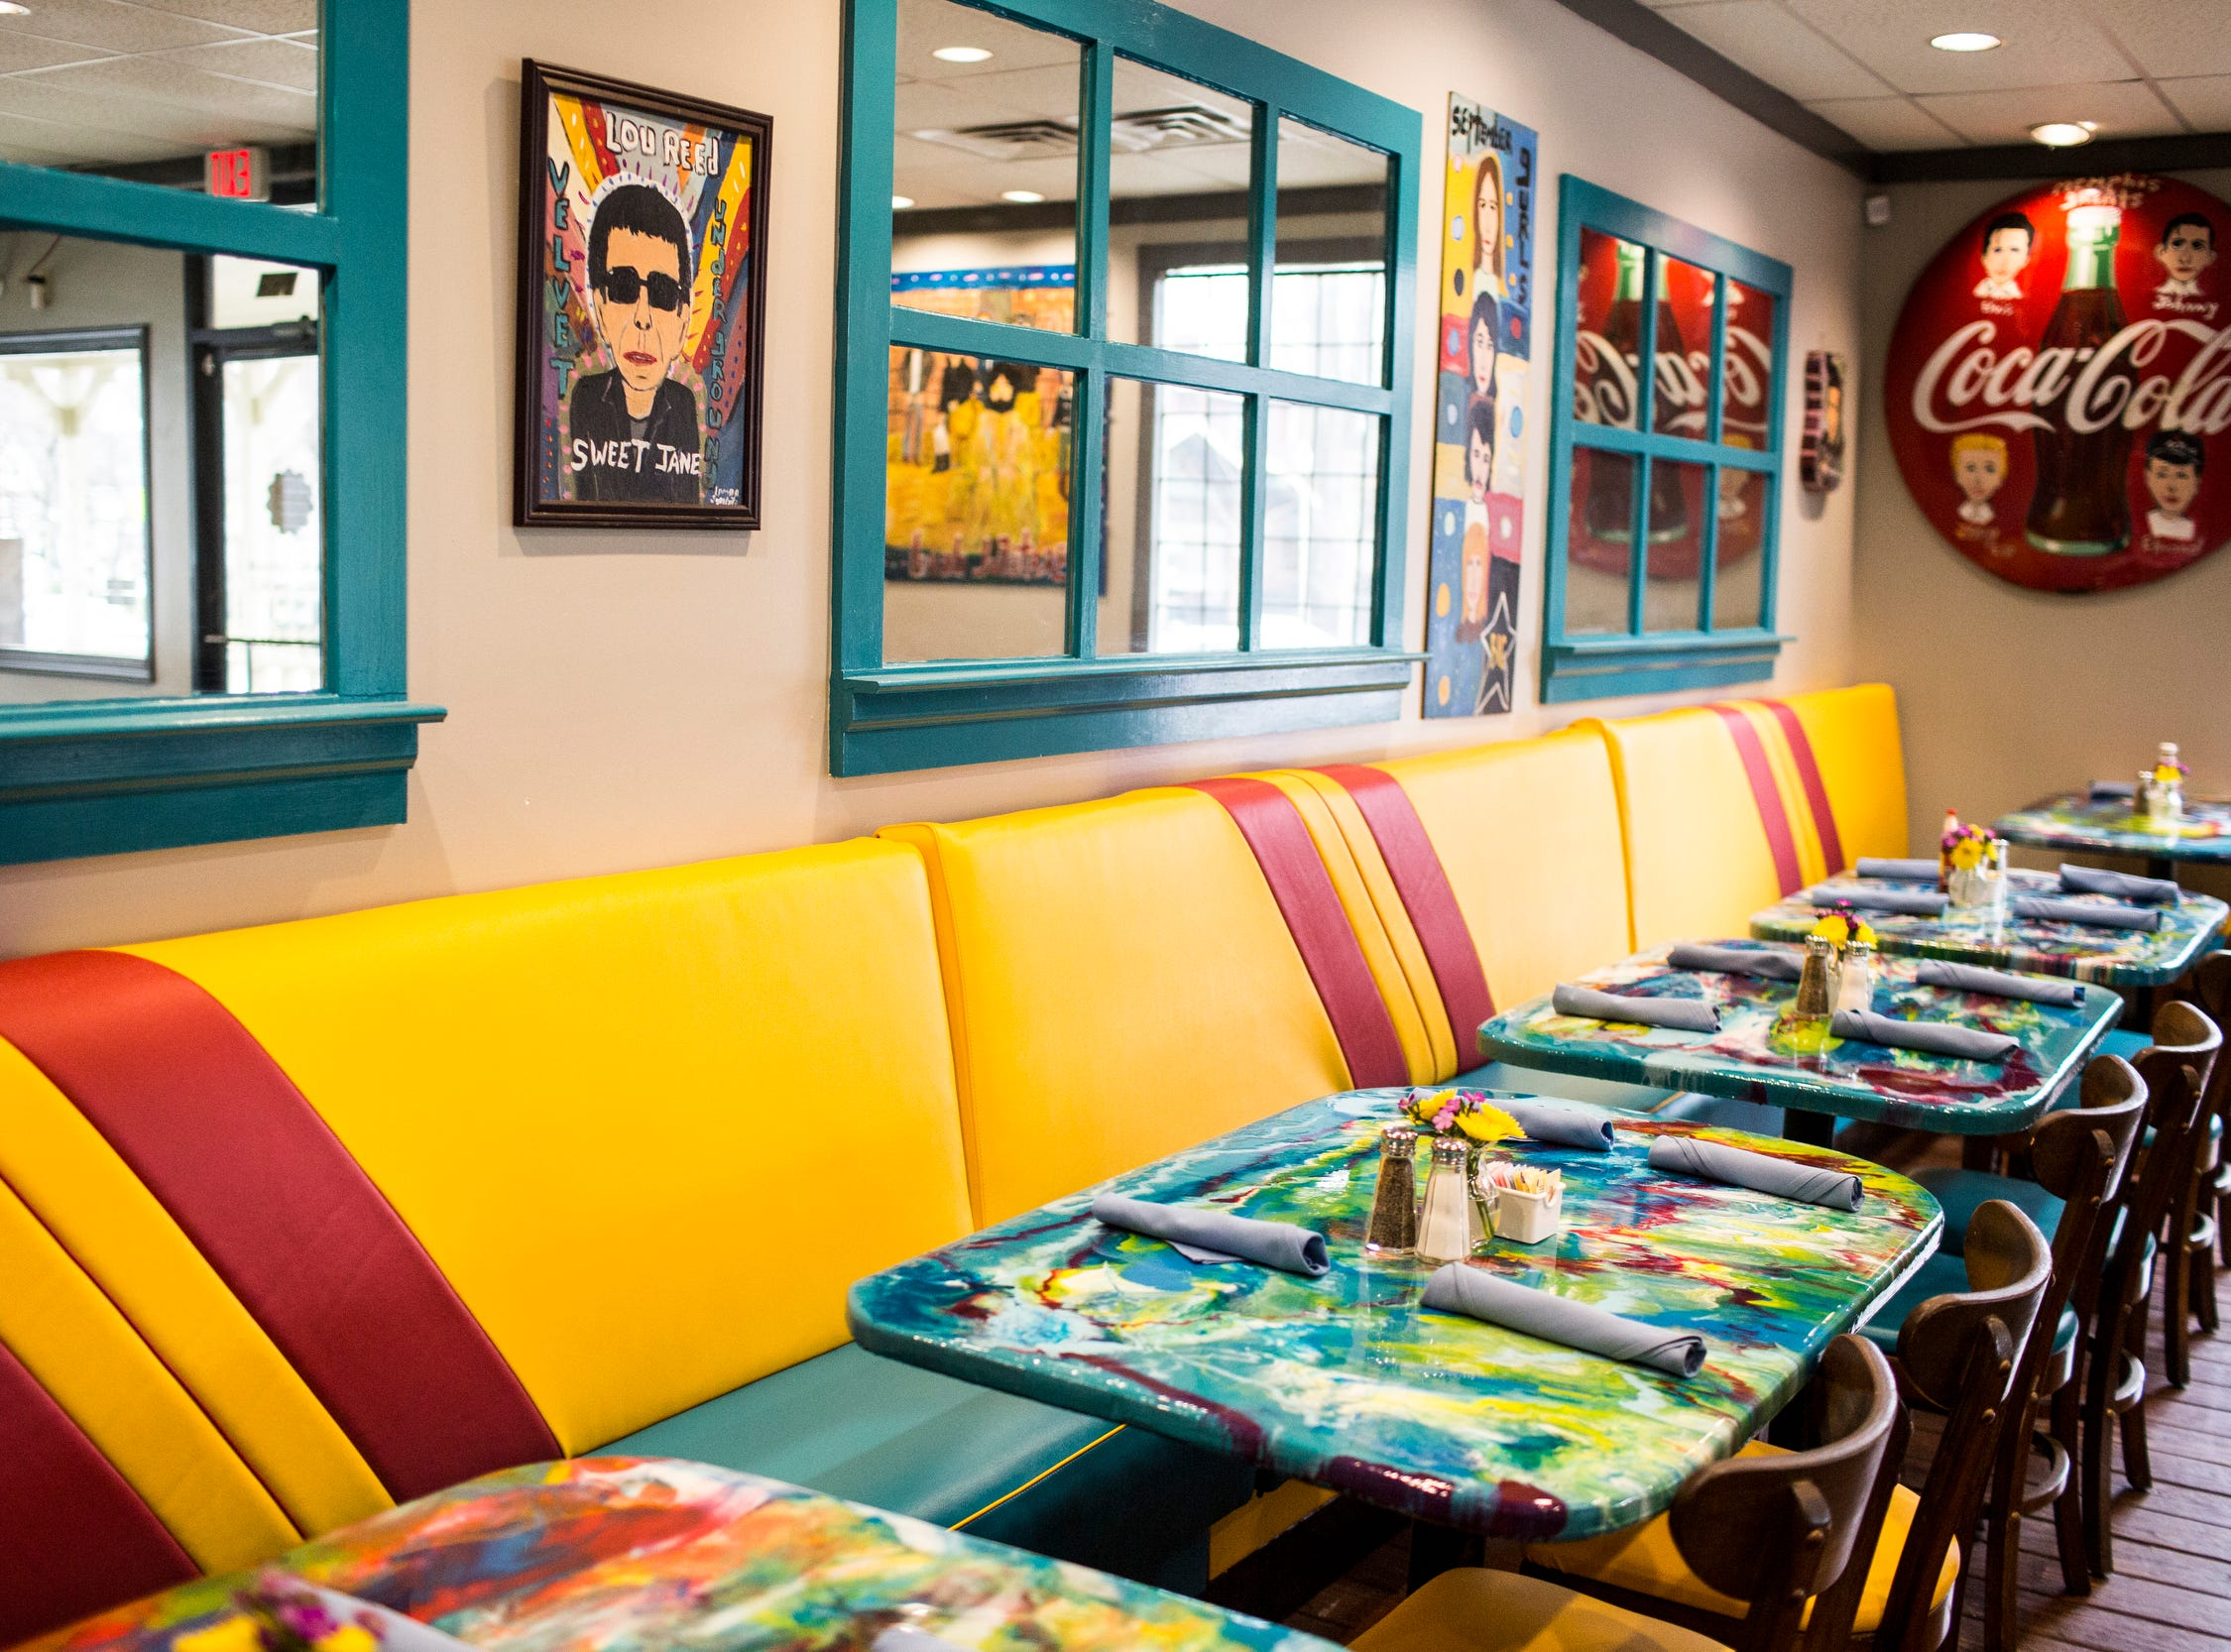 February 04 2019 - Elwood's Shells officially opened on Monday, February 4th and is located at 916 S. Cooper Street.